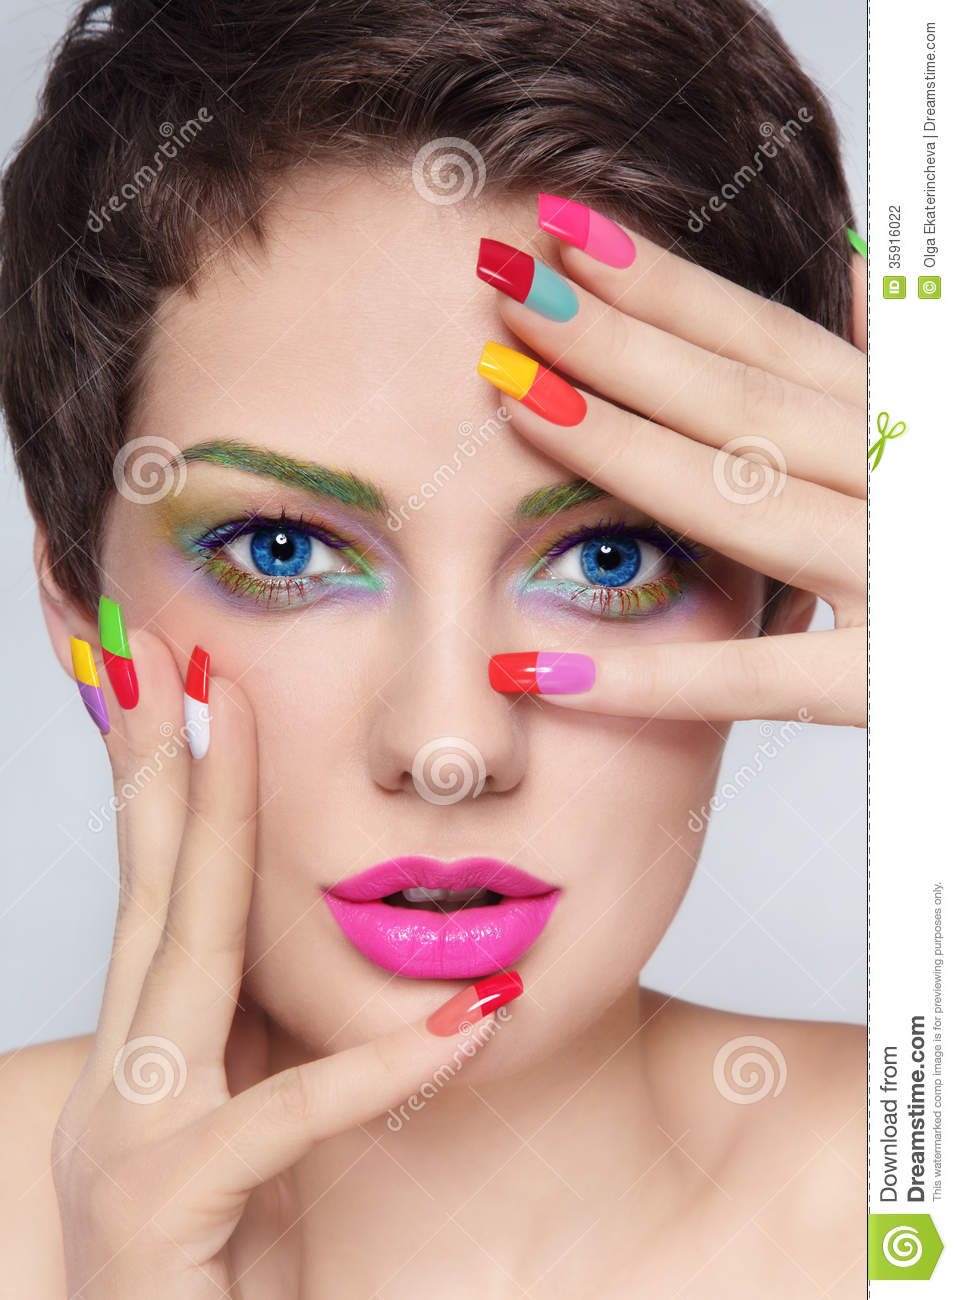 Colorful makeup eyes